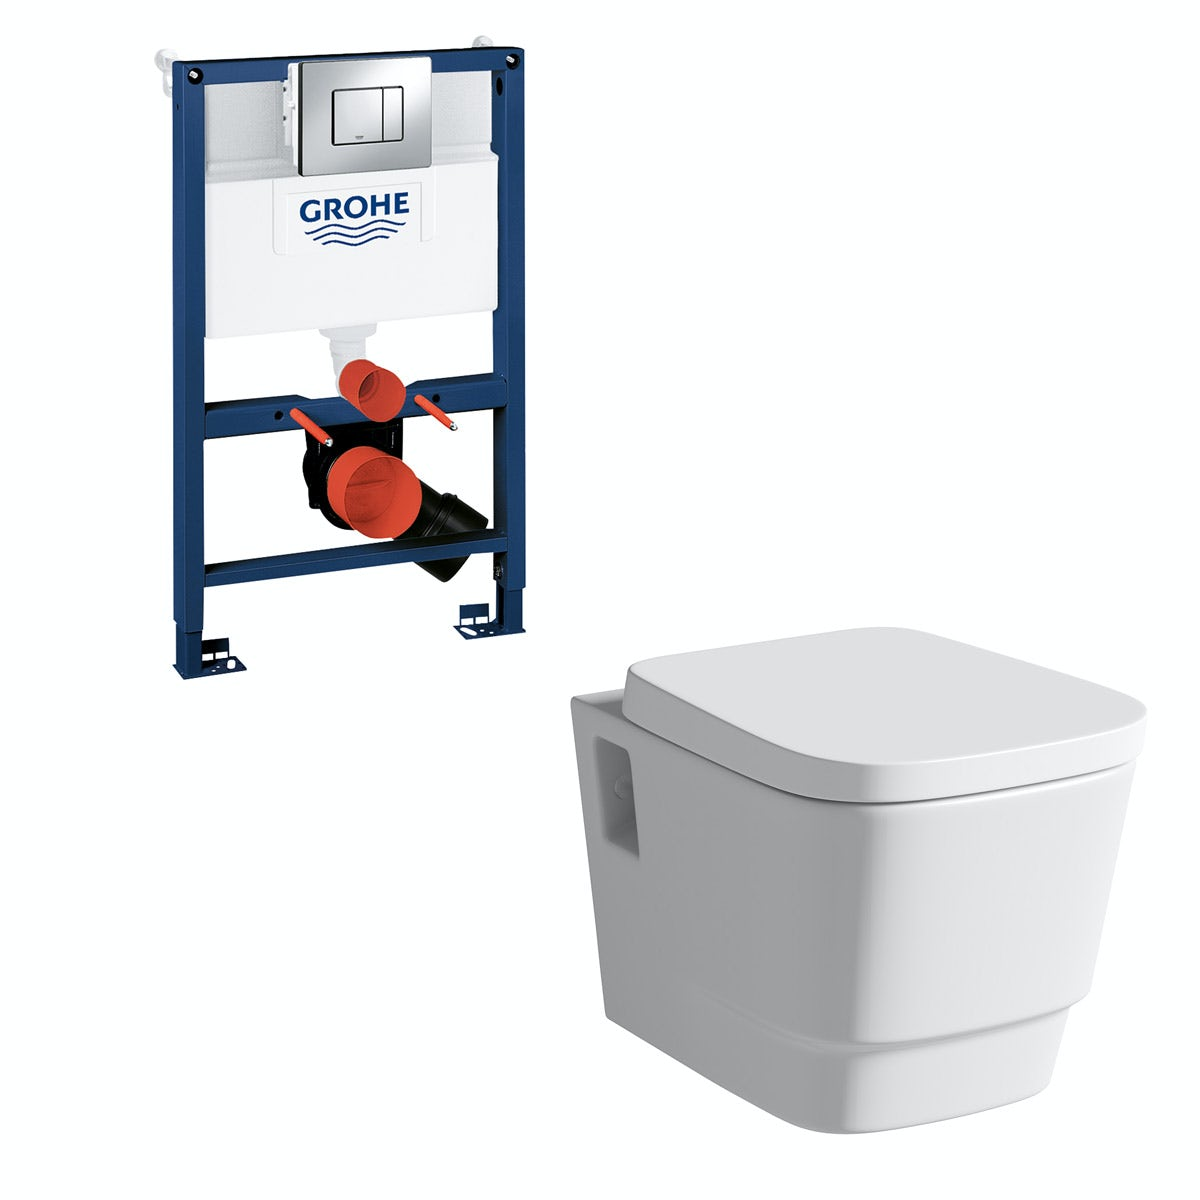 Mode Foster wall hung toilet, Grohe frame and Skate Cosmopolitan push plate 0.82m